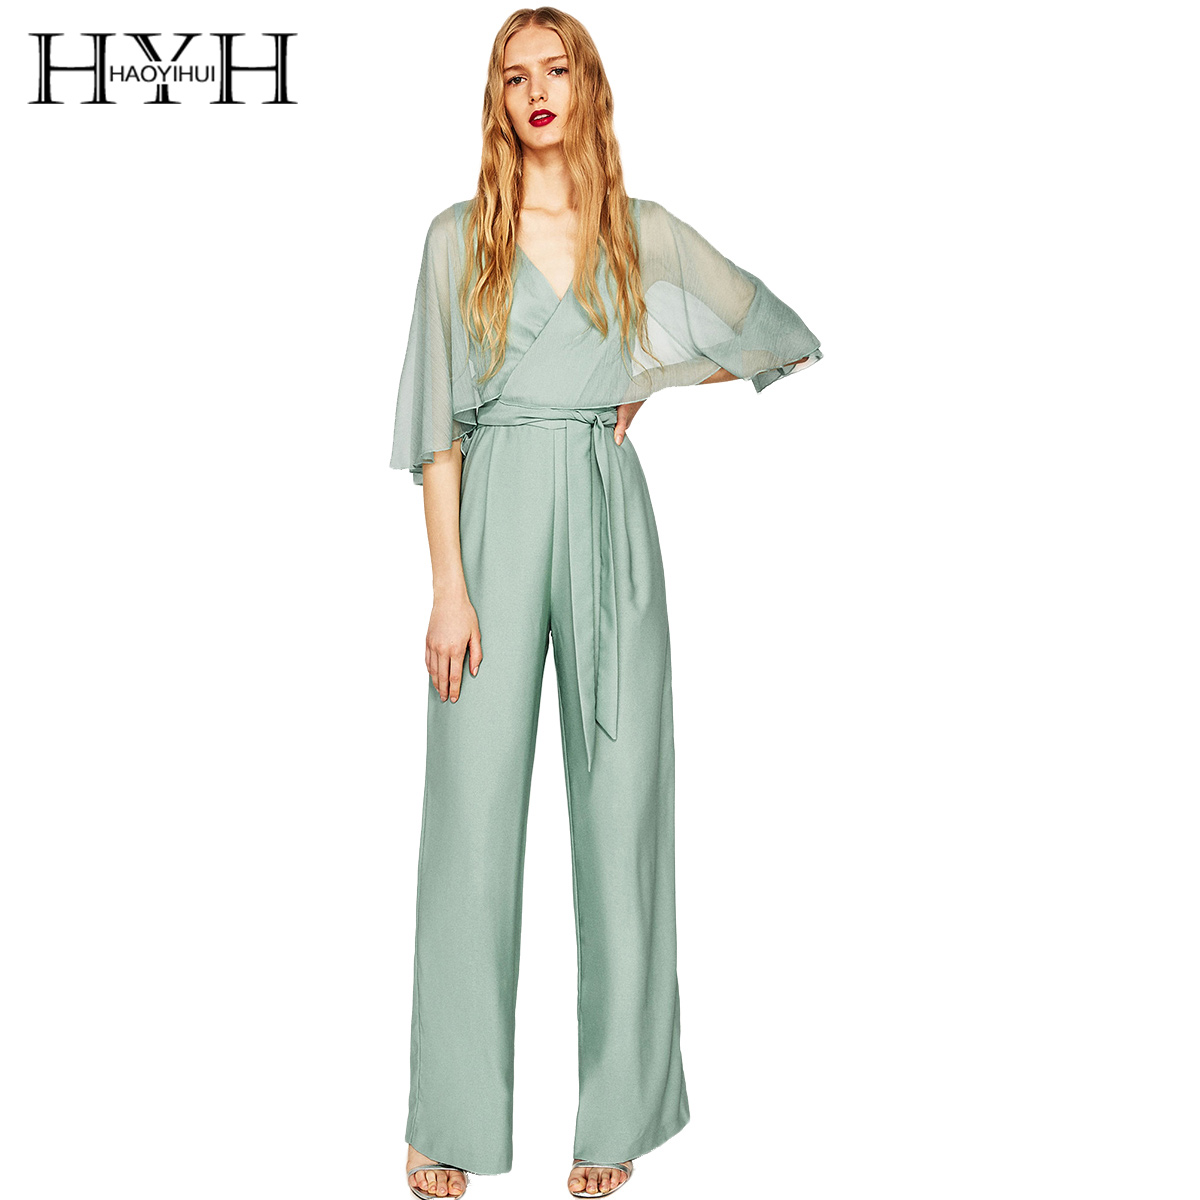 HYH HAOYIHUI 2018 Sexy New Fashion Women Elegant Contrast Sheer Brief Half Sleeve High-Waist Solid V-Neck   Jumpsuits